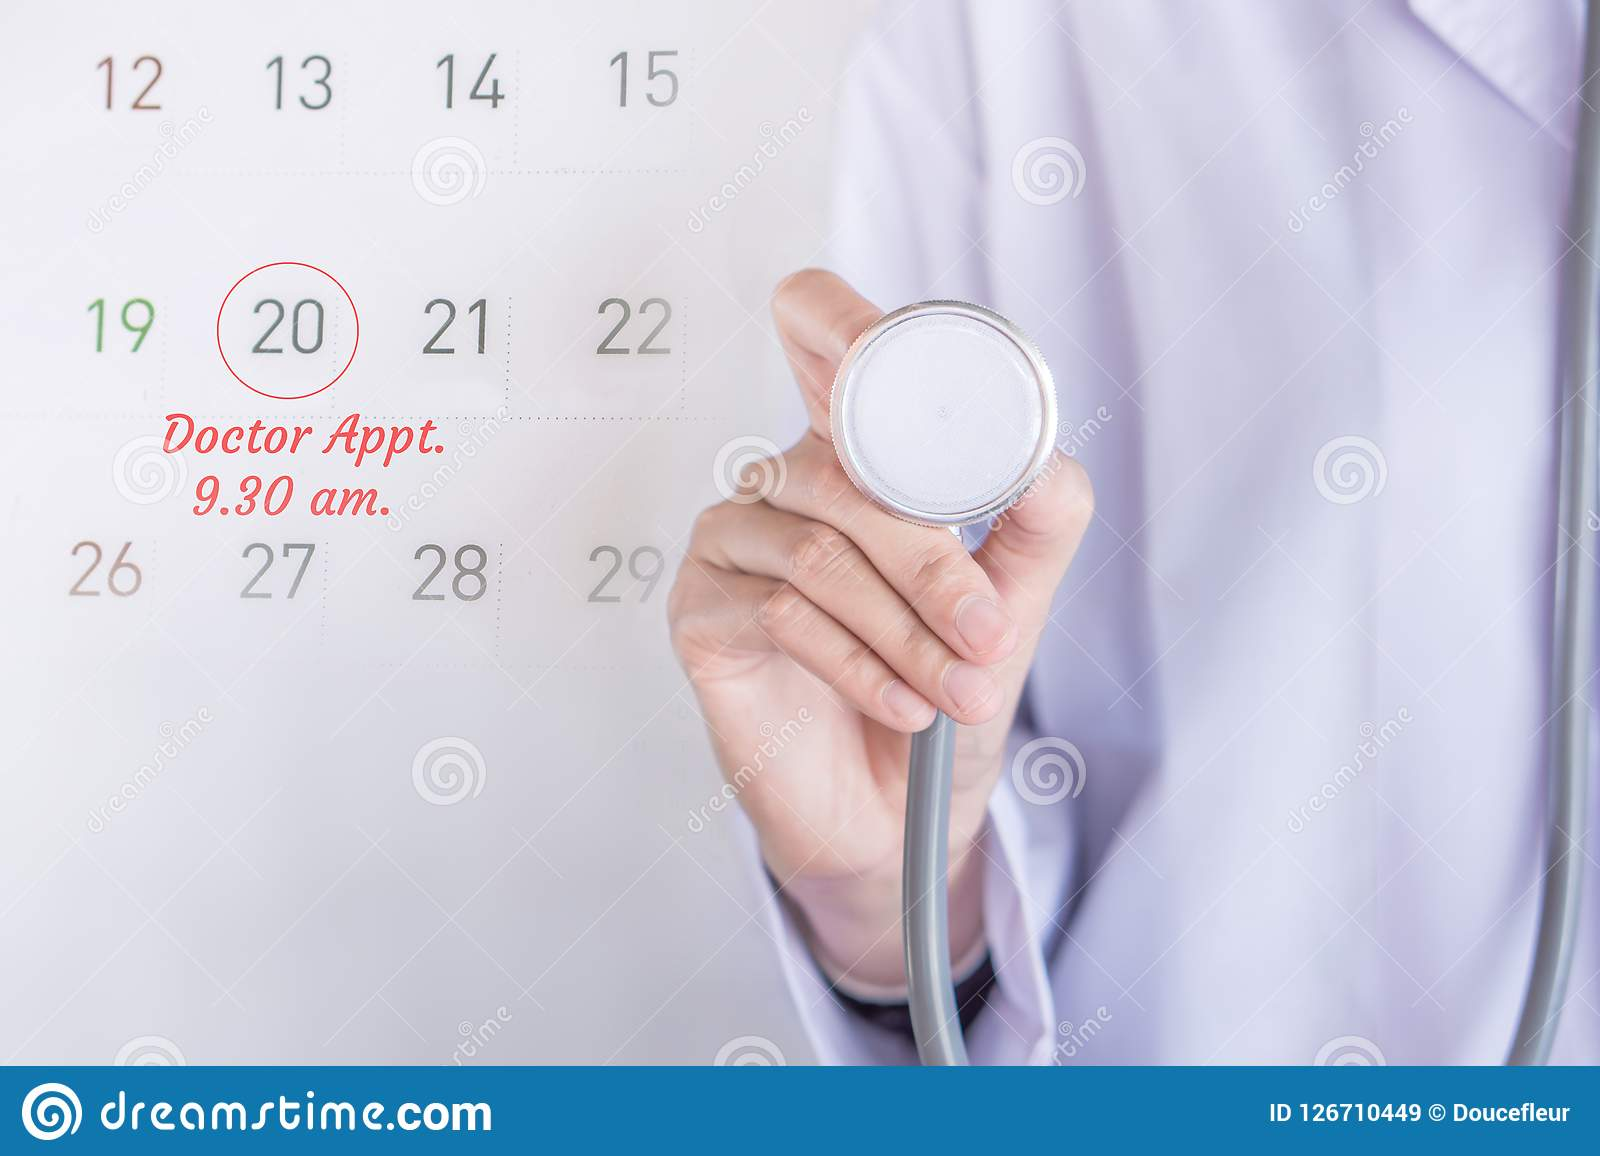 Doctor appointment concept background with note on calendar and doctor hand holding stethoscope